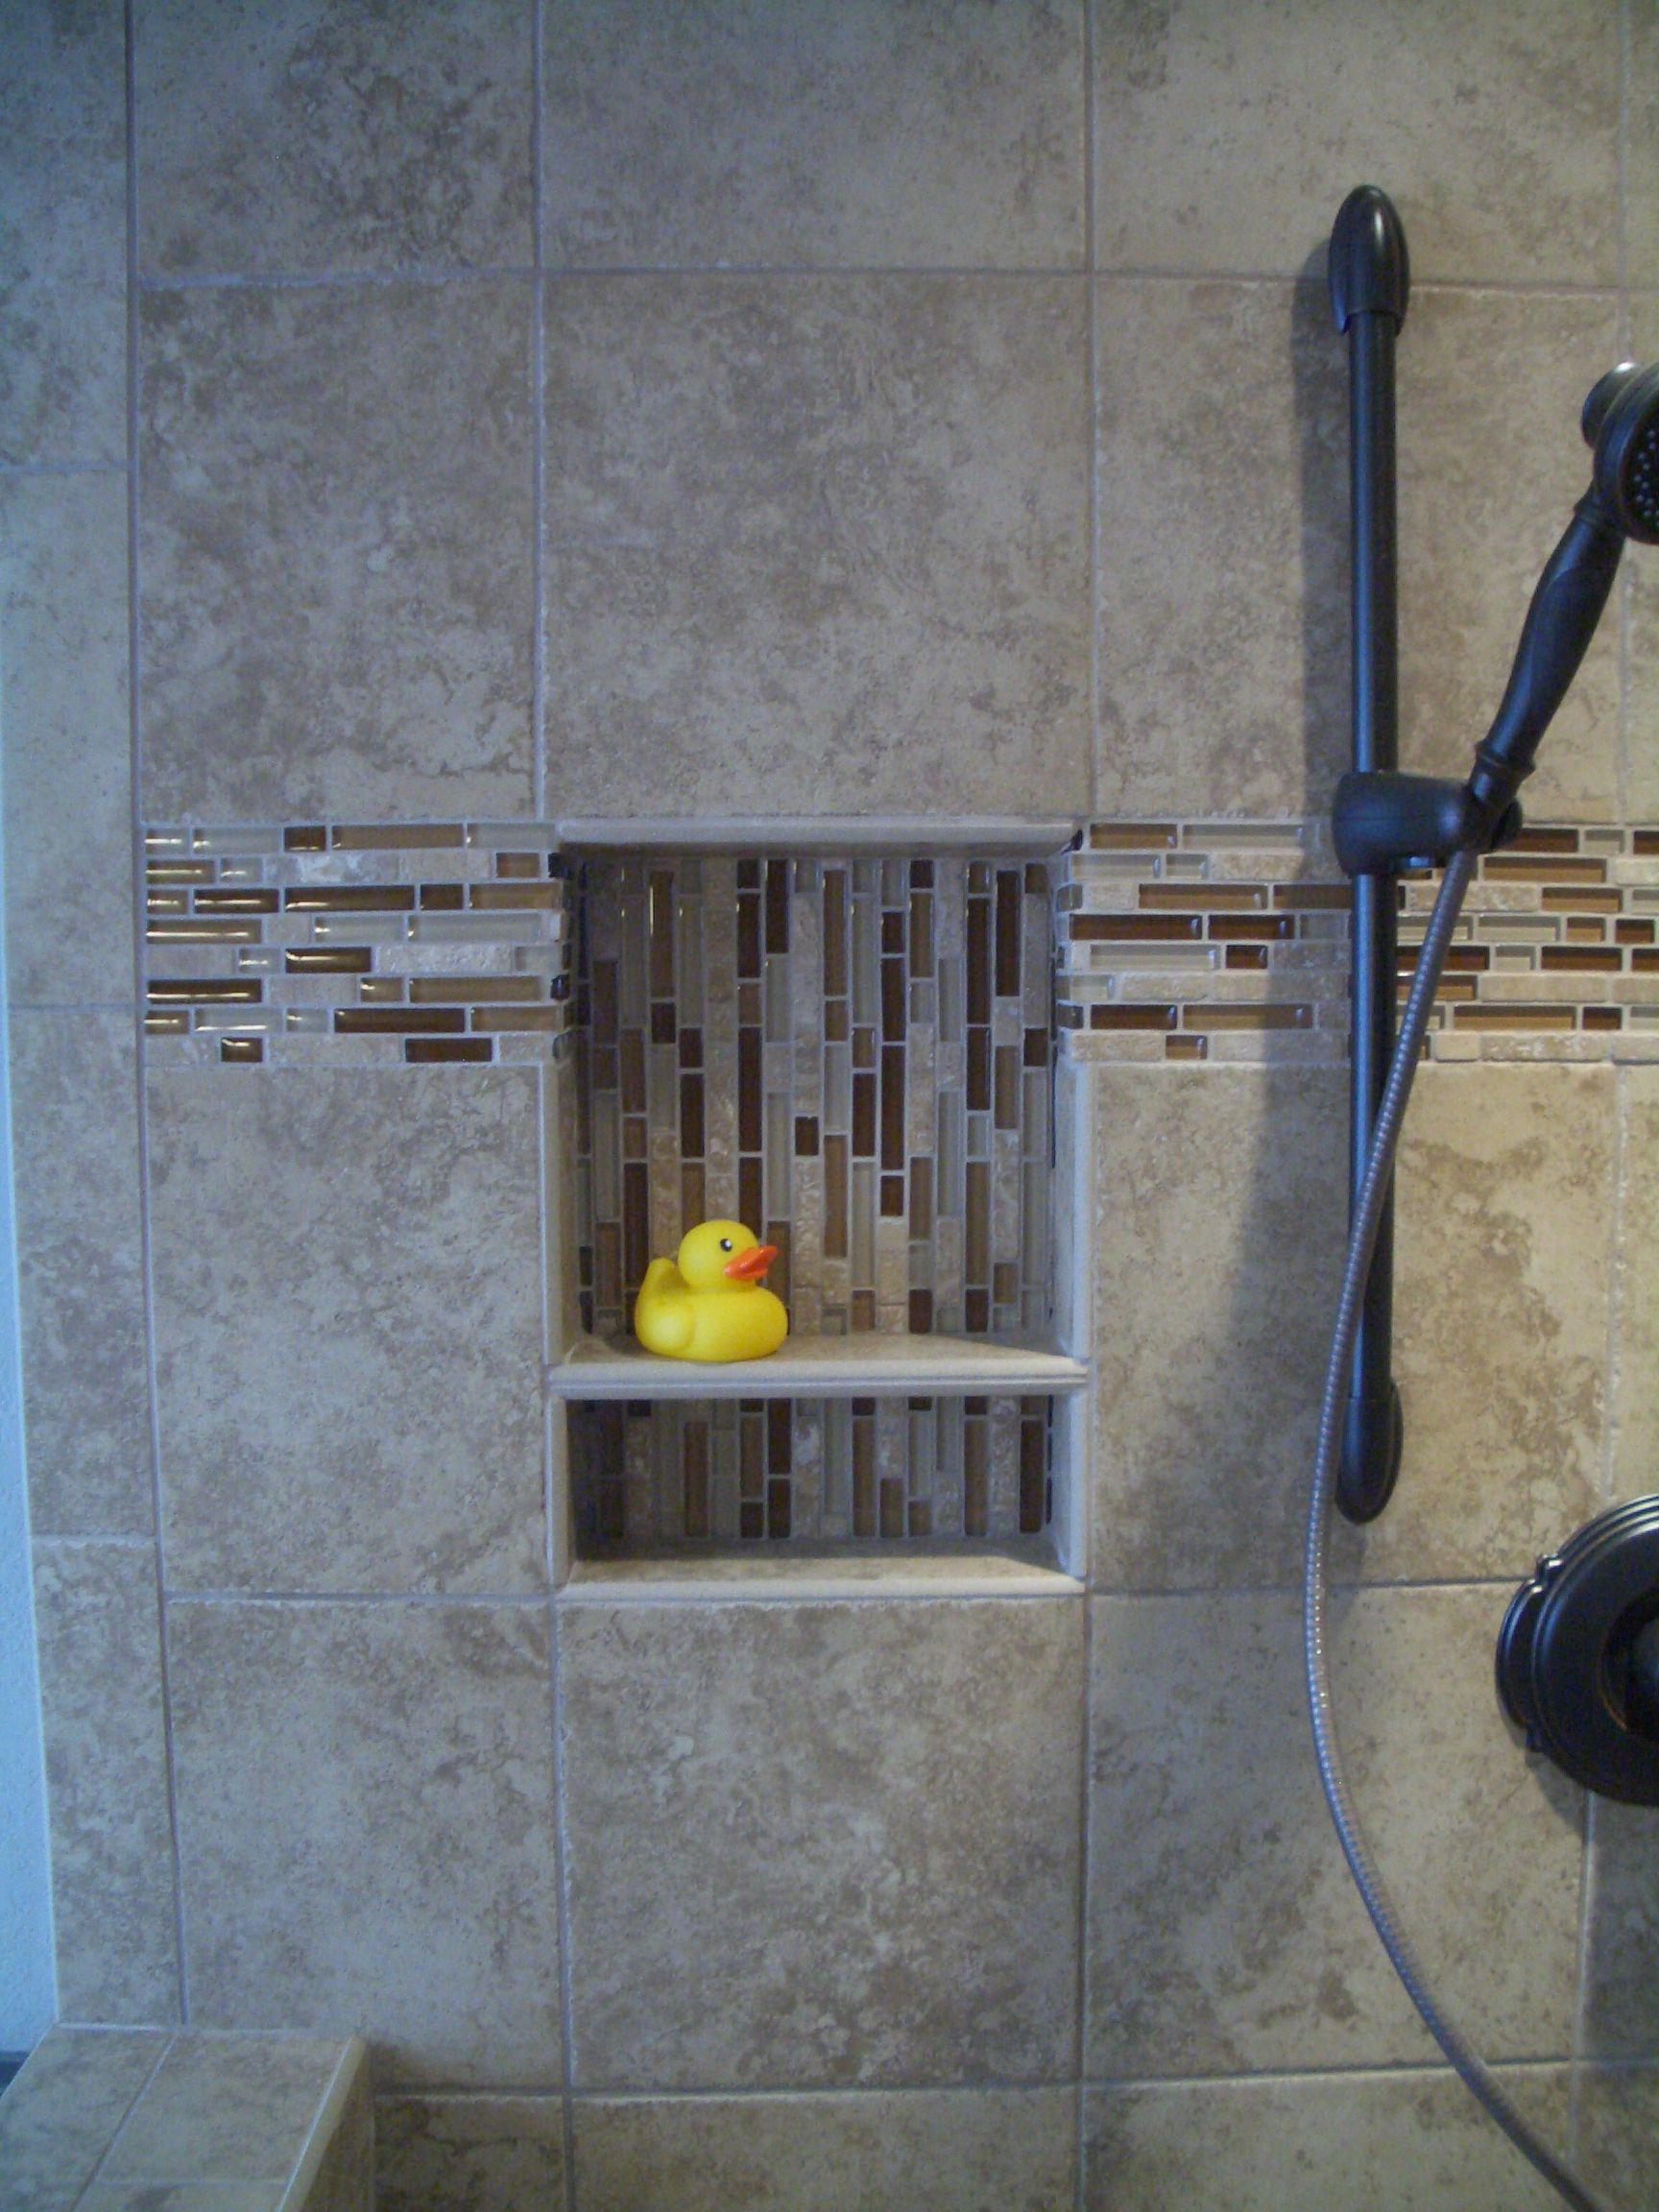 Marvelous Niche For Your Rubber Ducky How To Waterproof A Shower Niche